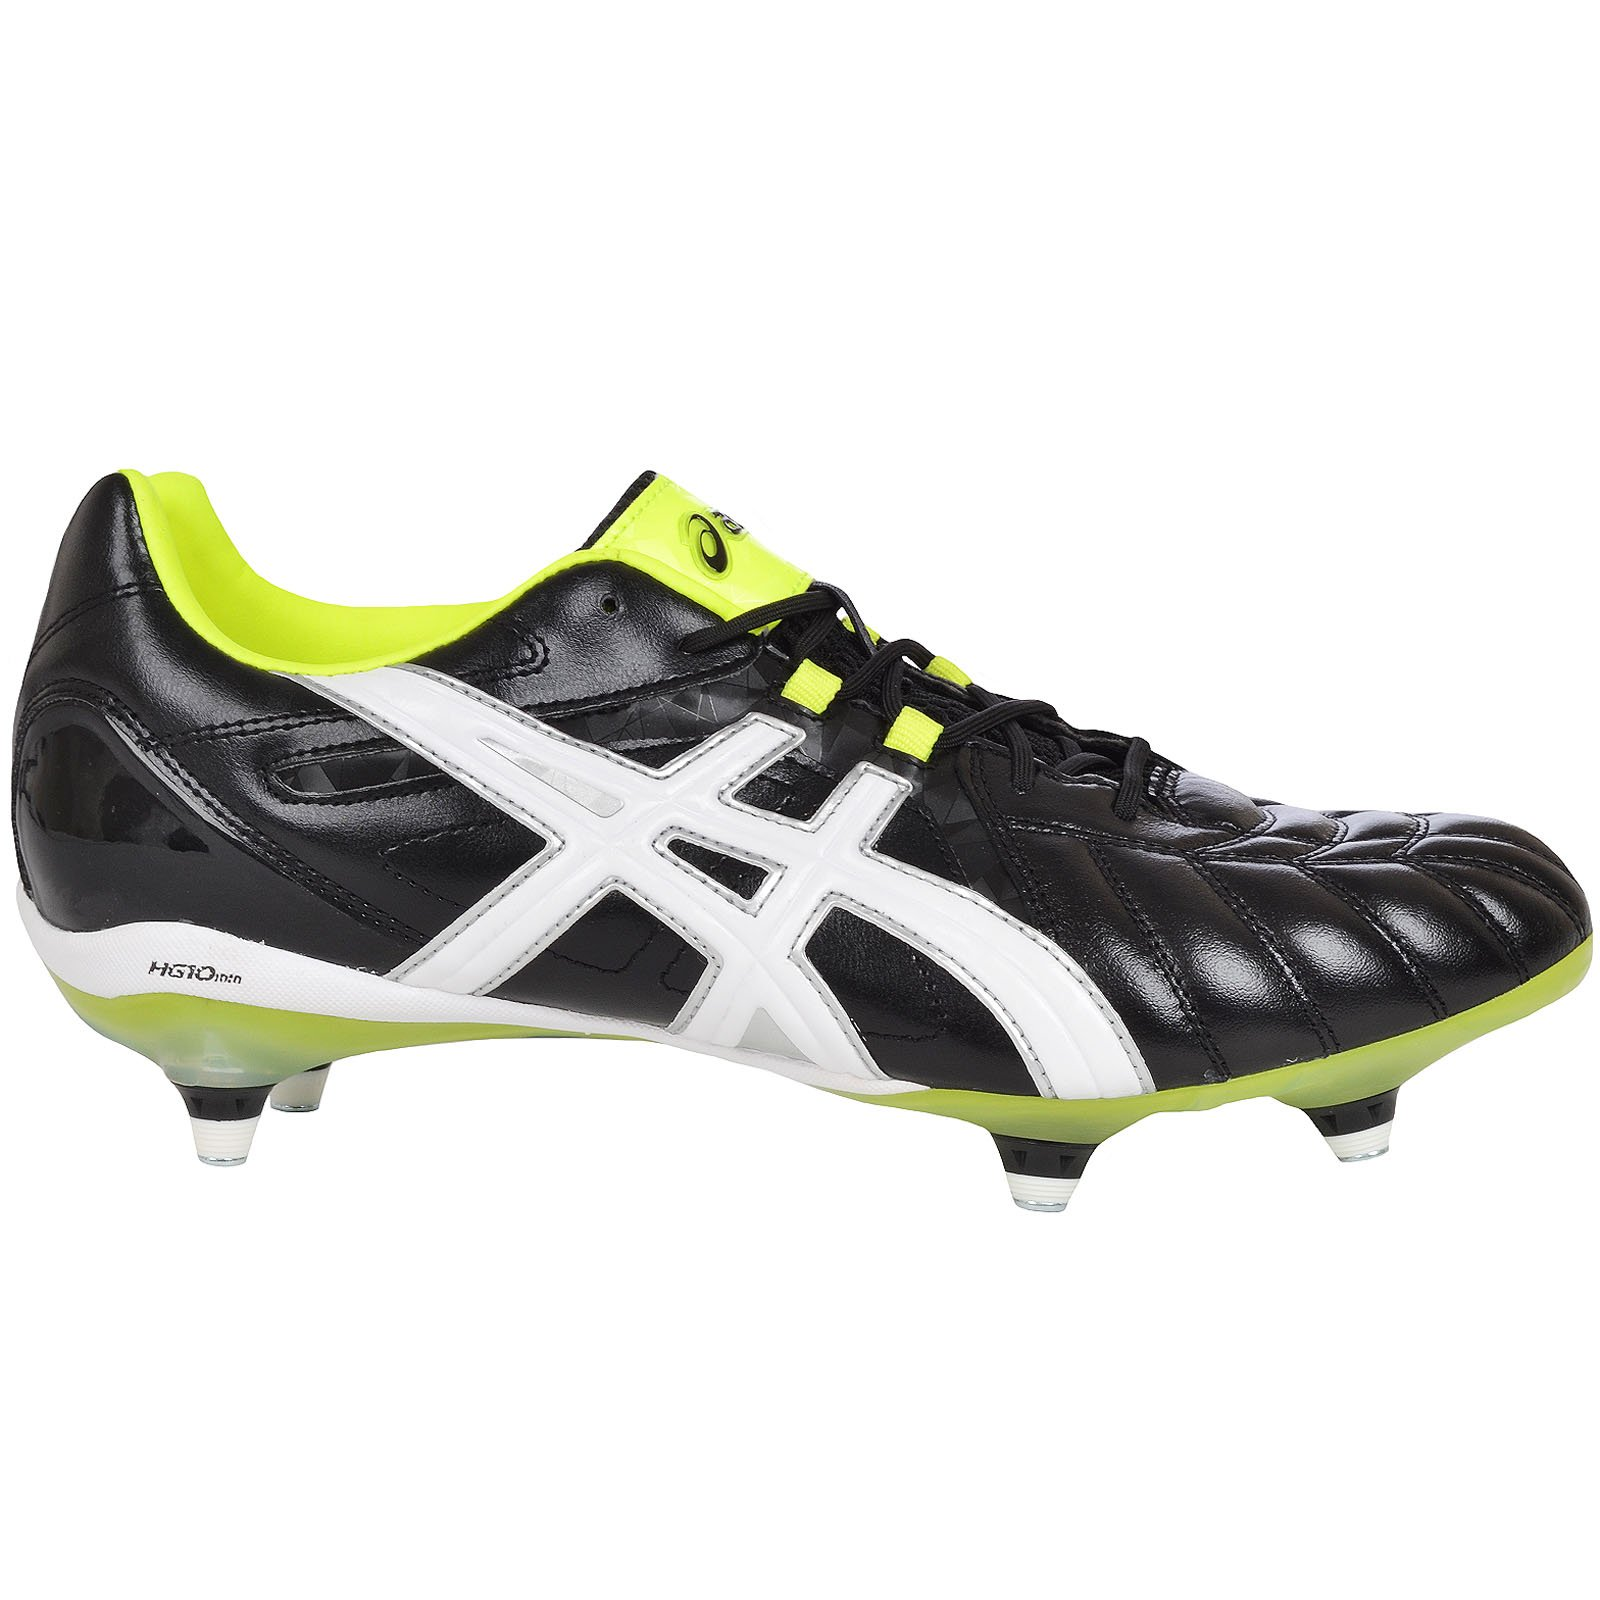 ASICS Mens Lethal Tigreor 8 Stud Rugby Boots Cleats - Black - 10.5 US by ASICS